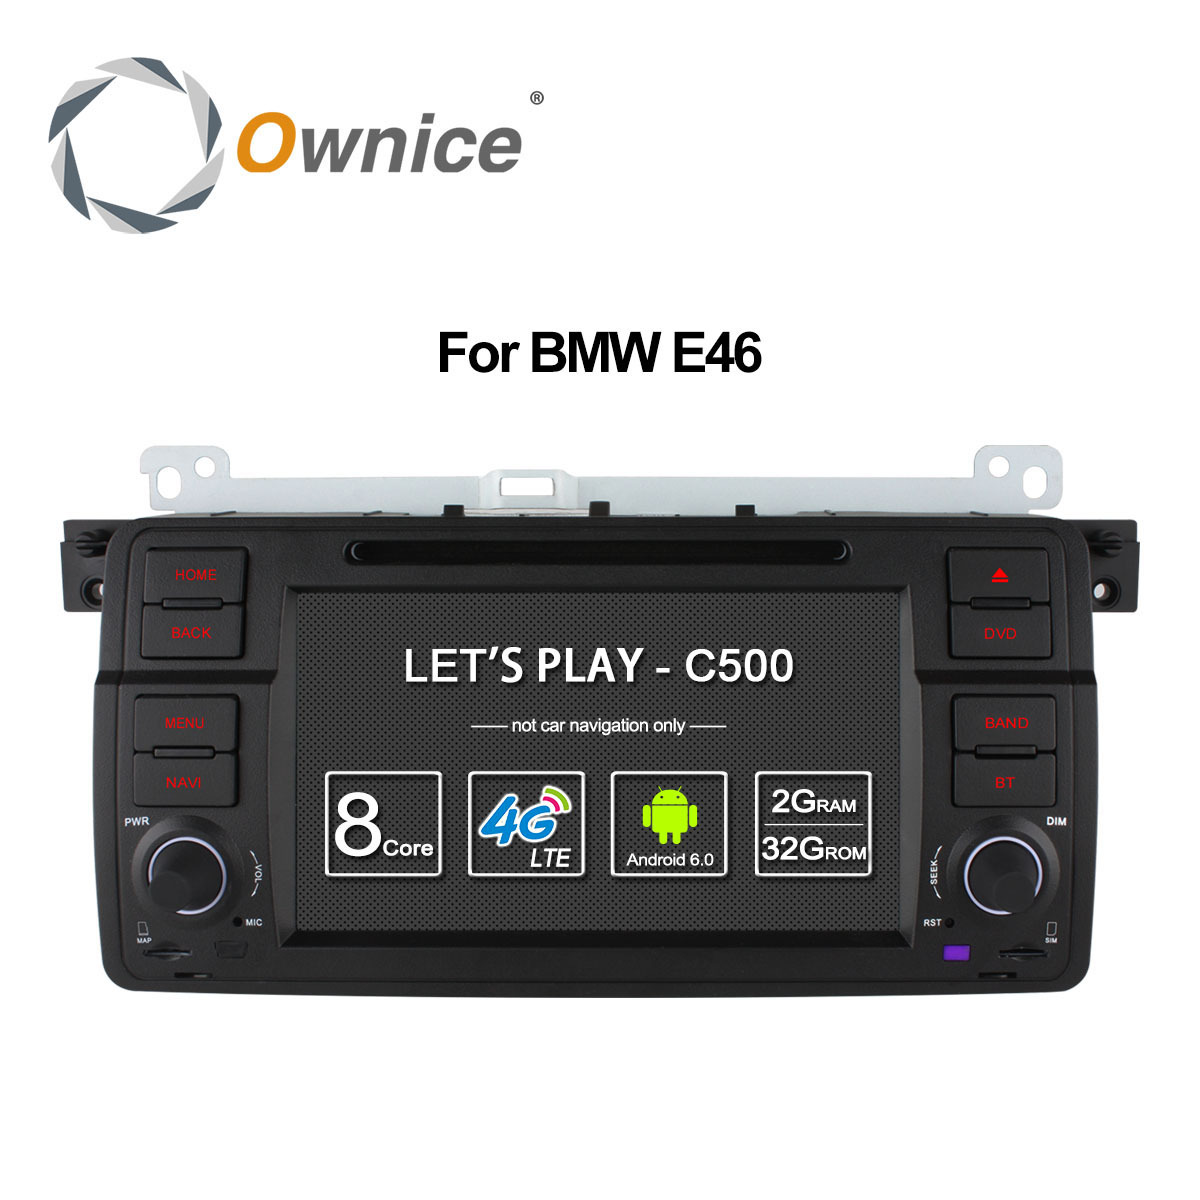 Ownice C500 Android 6.0 Octa 8 Core for bmw E46 M3 car dvd gps navi wifi 4G BT Radio RDS 2GB RAM 32GB ROM support DAB+ TPMS seicane 8 core android 8 0 9 1din car radio gps navi for bmw 3 series e46 m3 316i 318i 320i 323i 325i with wifi bluetooth 32g